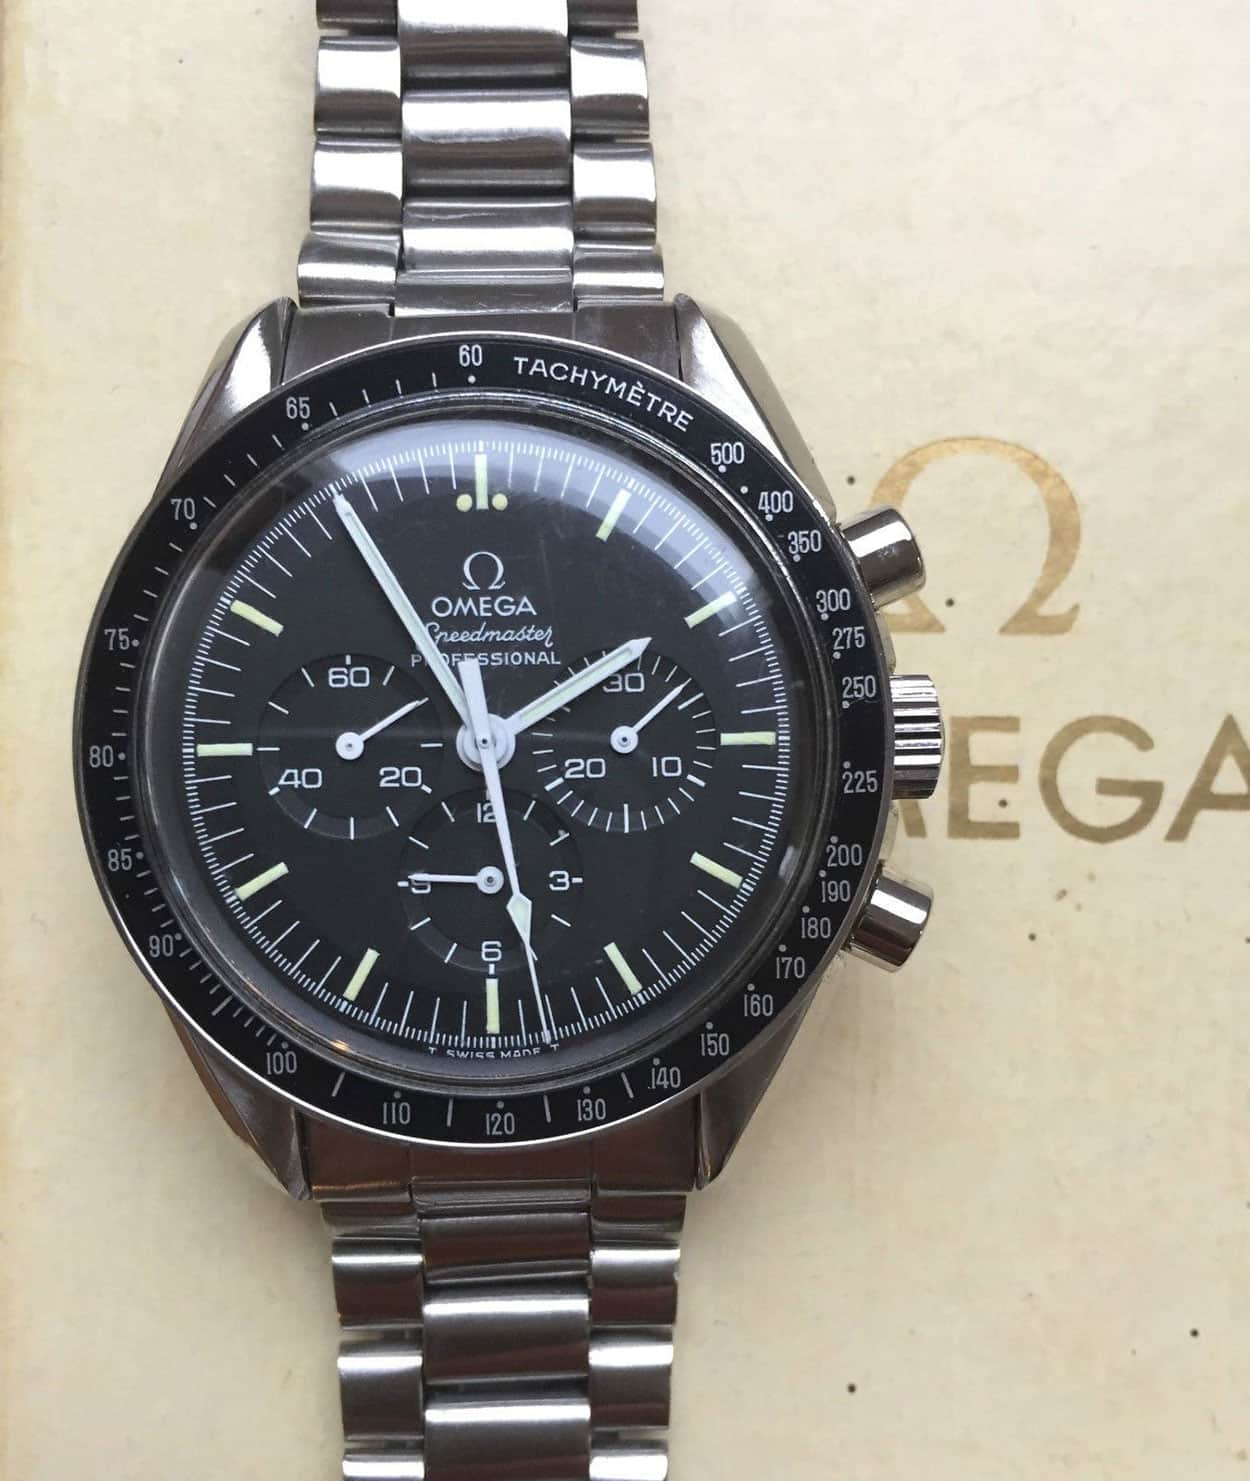 Omega Speedmaster Profesisonal - Nick's 1979 replacement watch